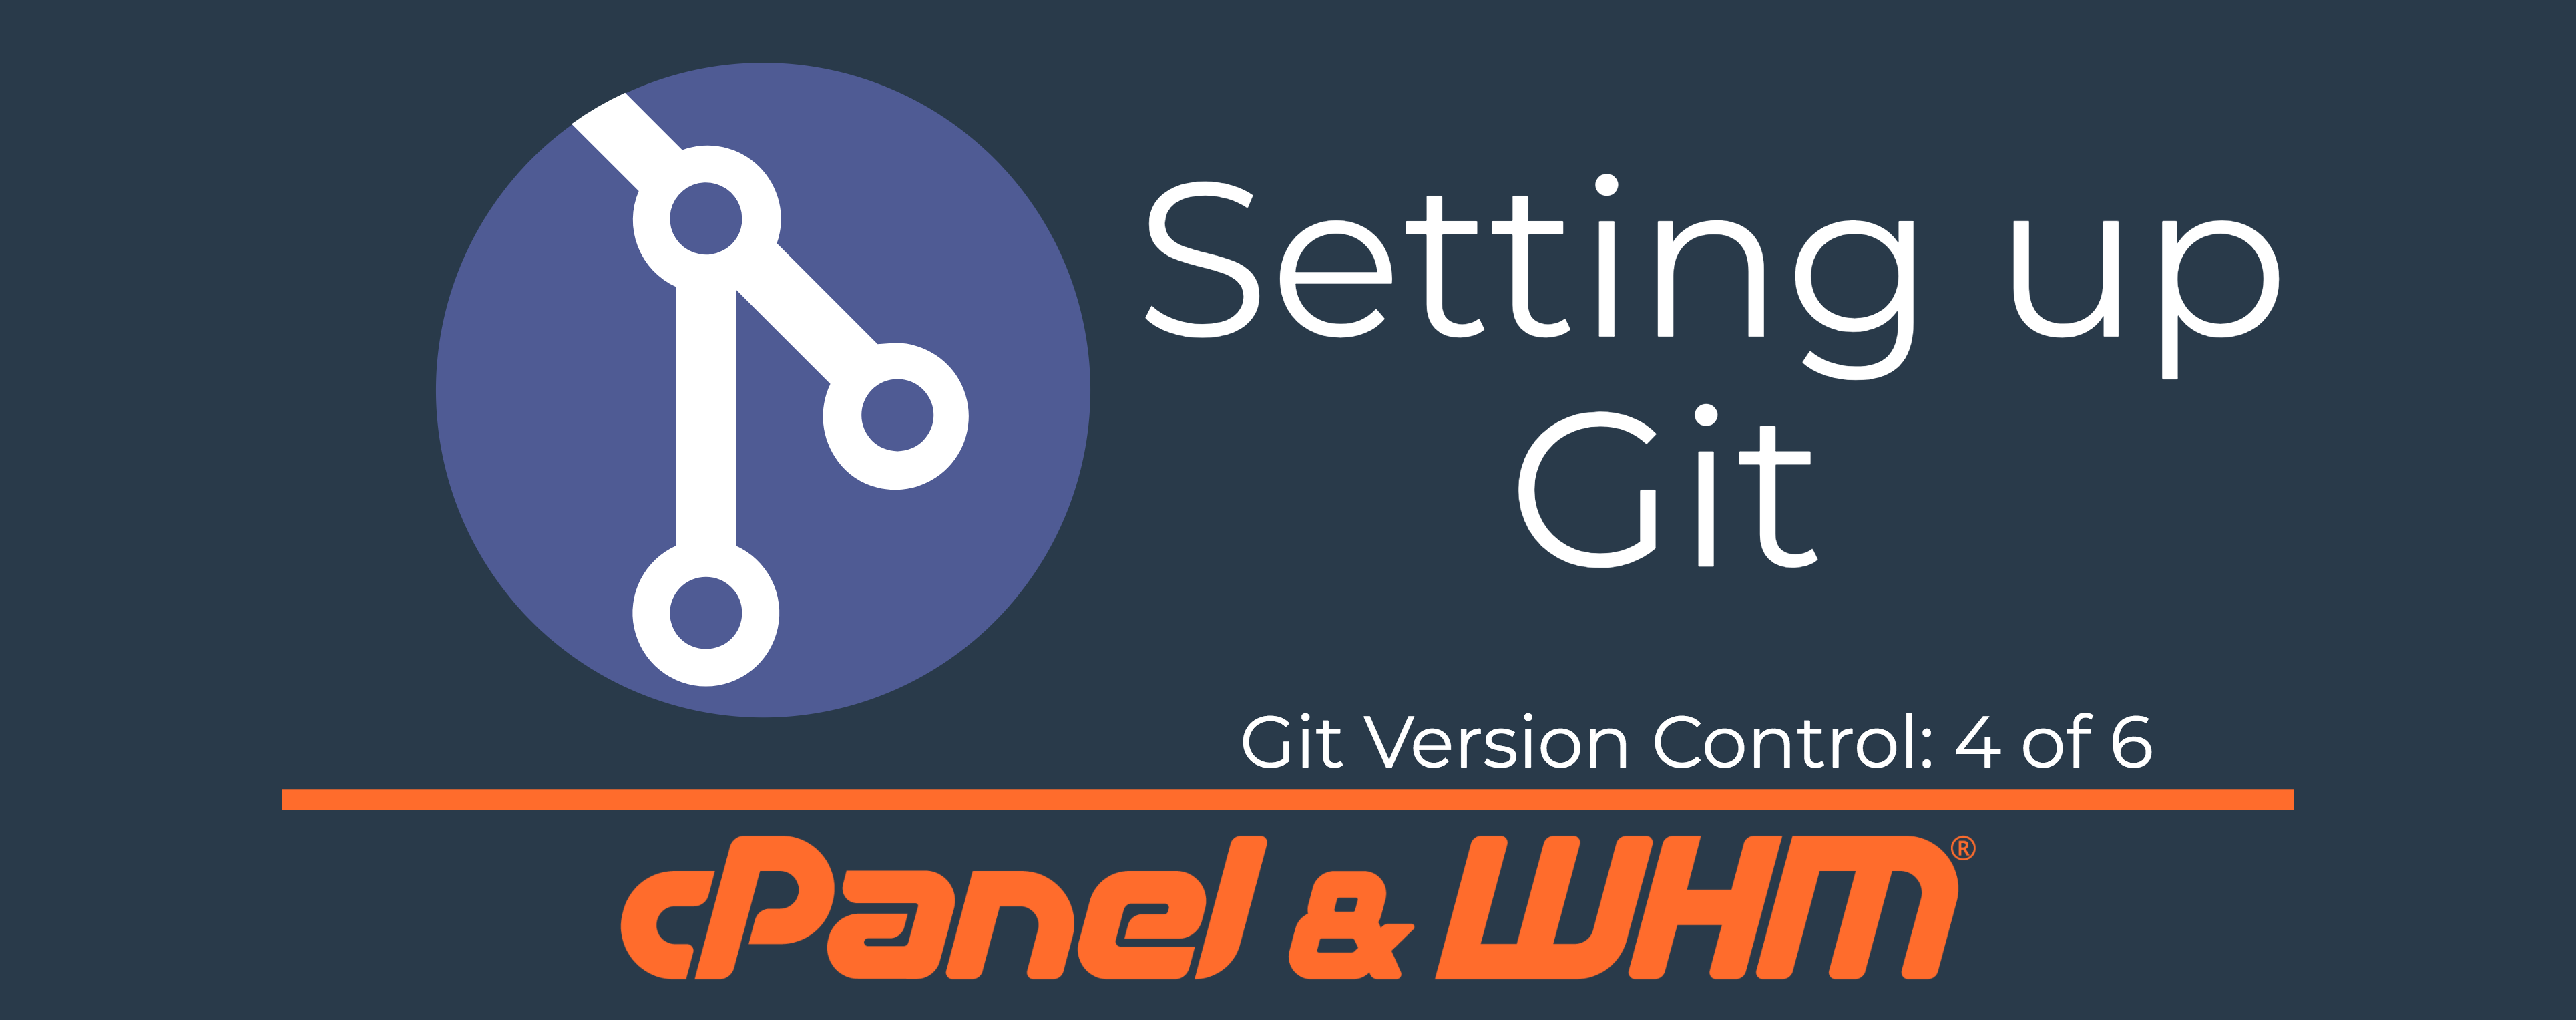 Git Version Control Series: Setting Up Git | cPanel Blog